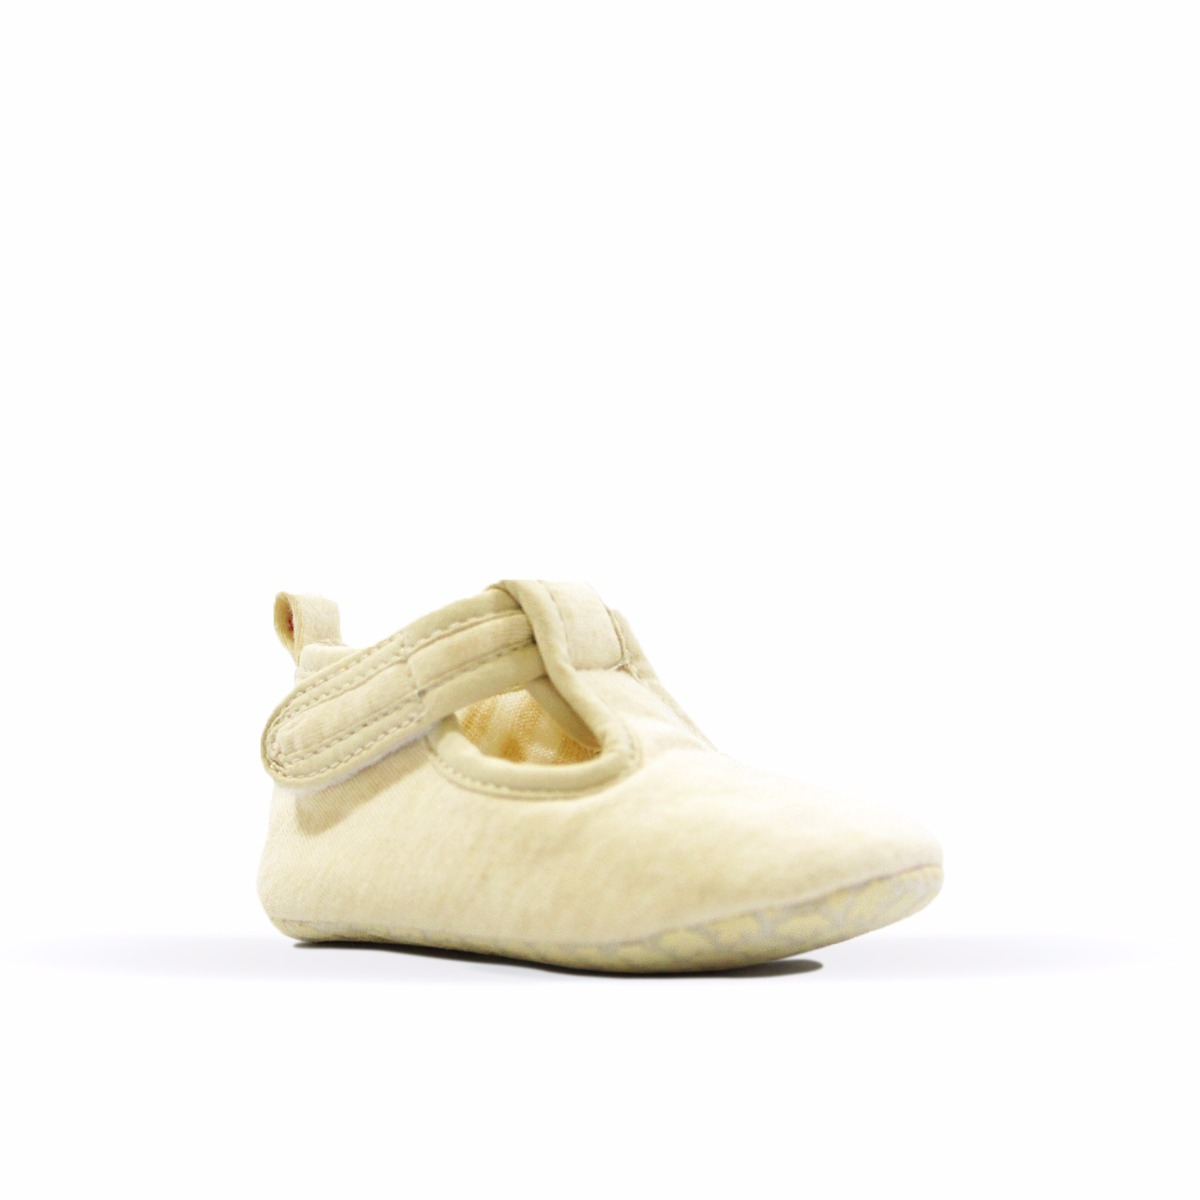 Real • Baby Organic Cotton Crawling T-Bar Flats